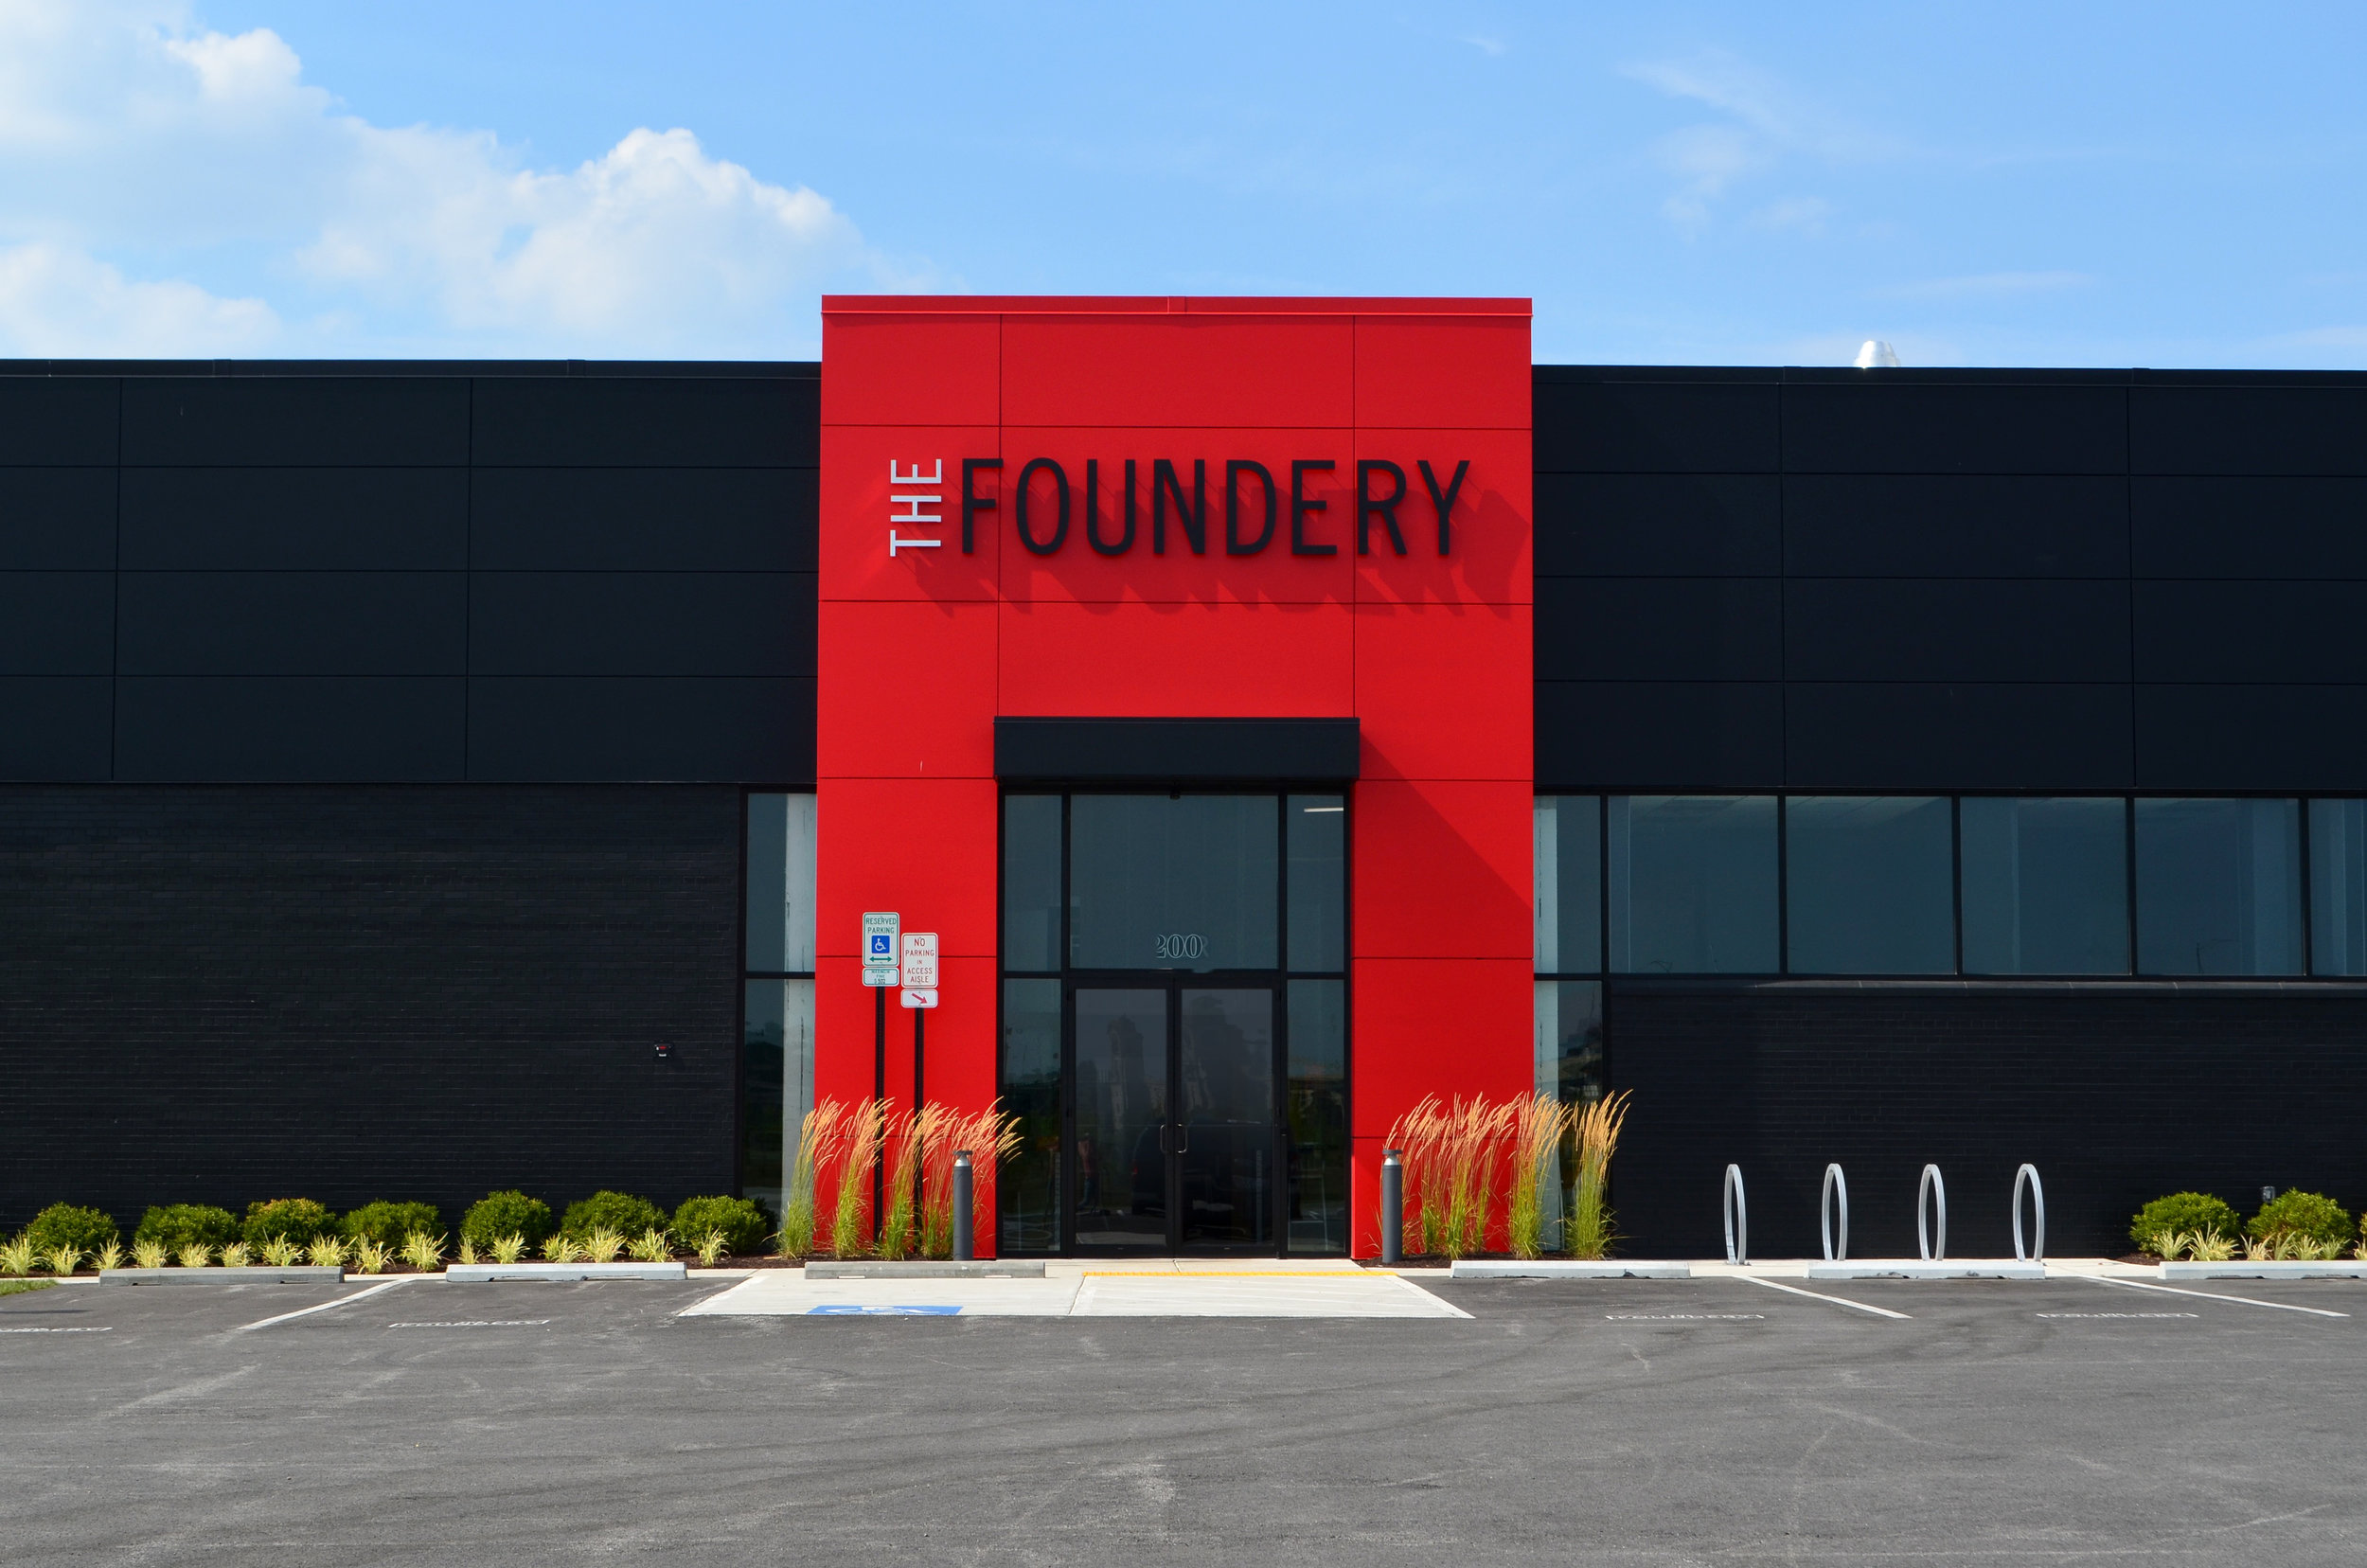 The Foundery